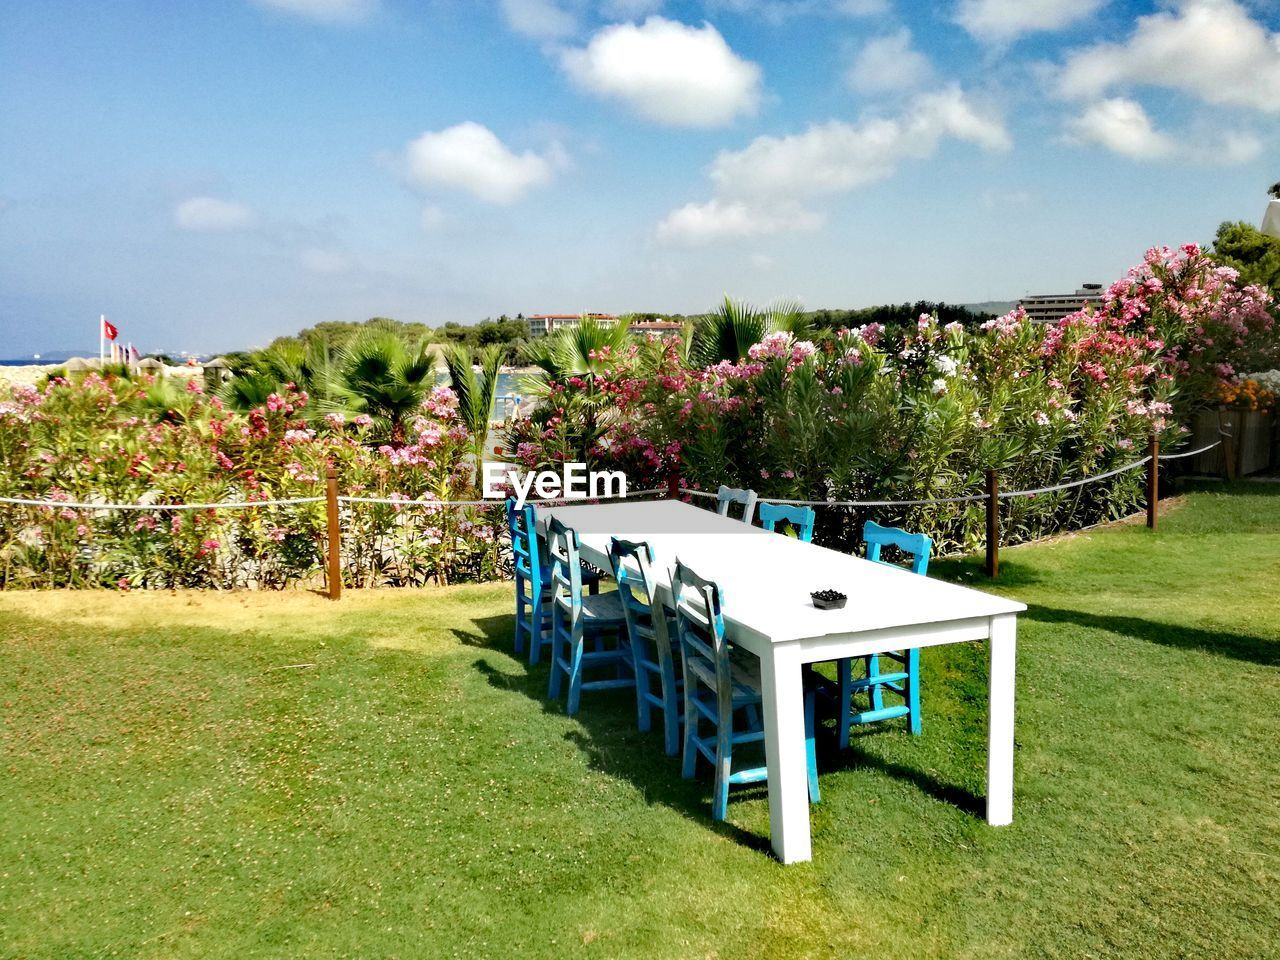 plant, grass, sky, cloud - sky, nature, seat, day, chair, tree, table, green color, no people, absence, growth, sunlight, flowering plant, empty, flower, architecture, field, outdoors